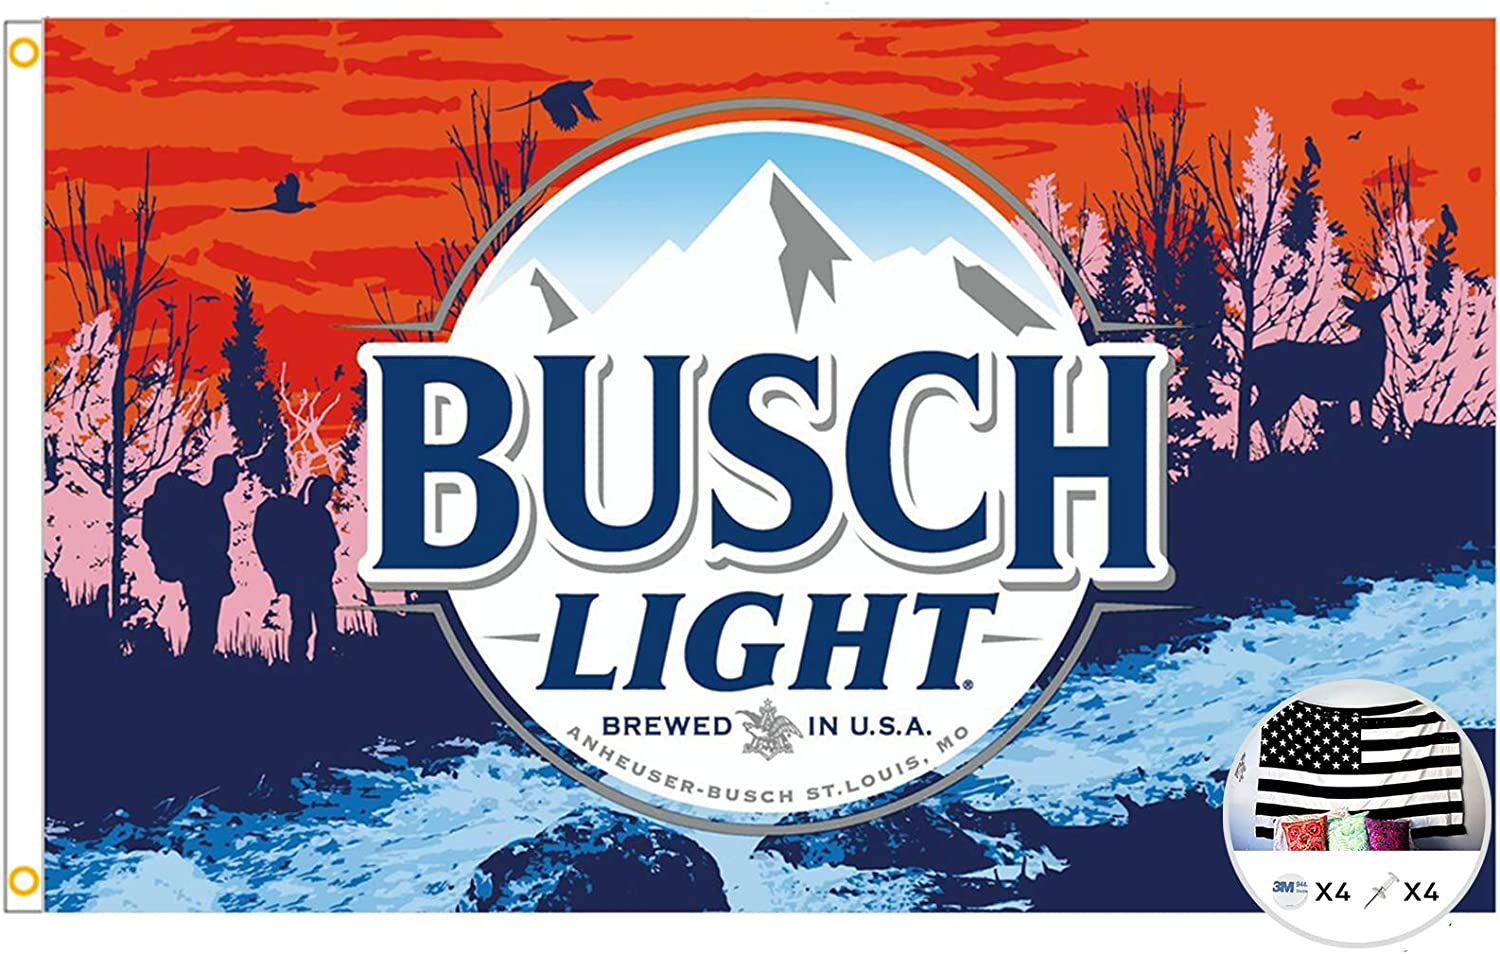 Probsin Busch Light Flag Cool Beer Flags,3x5 Feet Banner,Funny Poster UV Resistance Fading & Durable Man Cave Wall Flag with Brass Grommets for College Dorm Room Decor,Outdoor,Parties,Gift,Tailgates